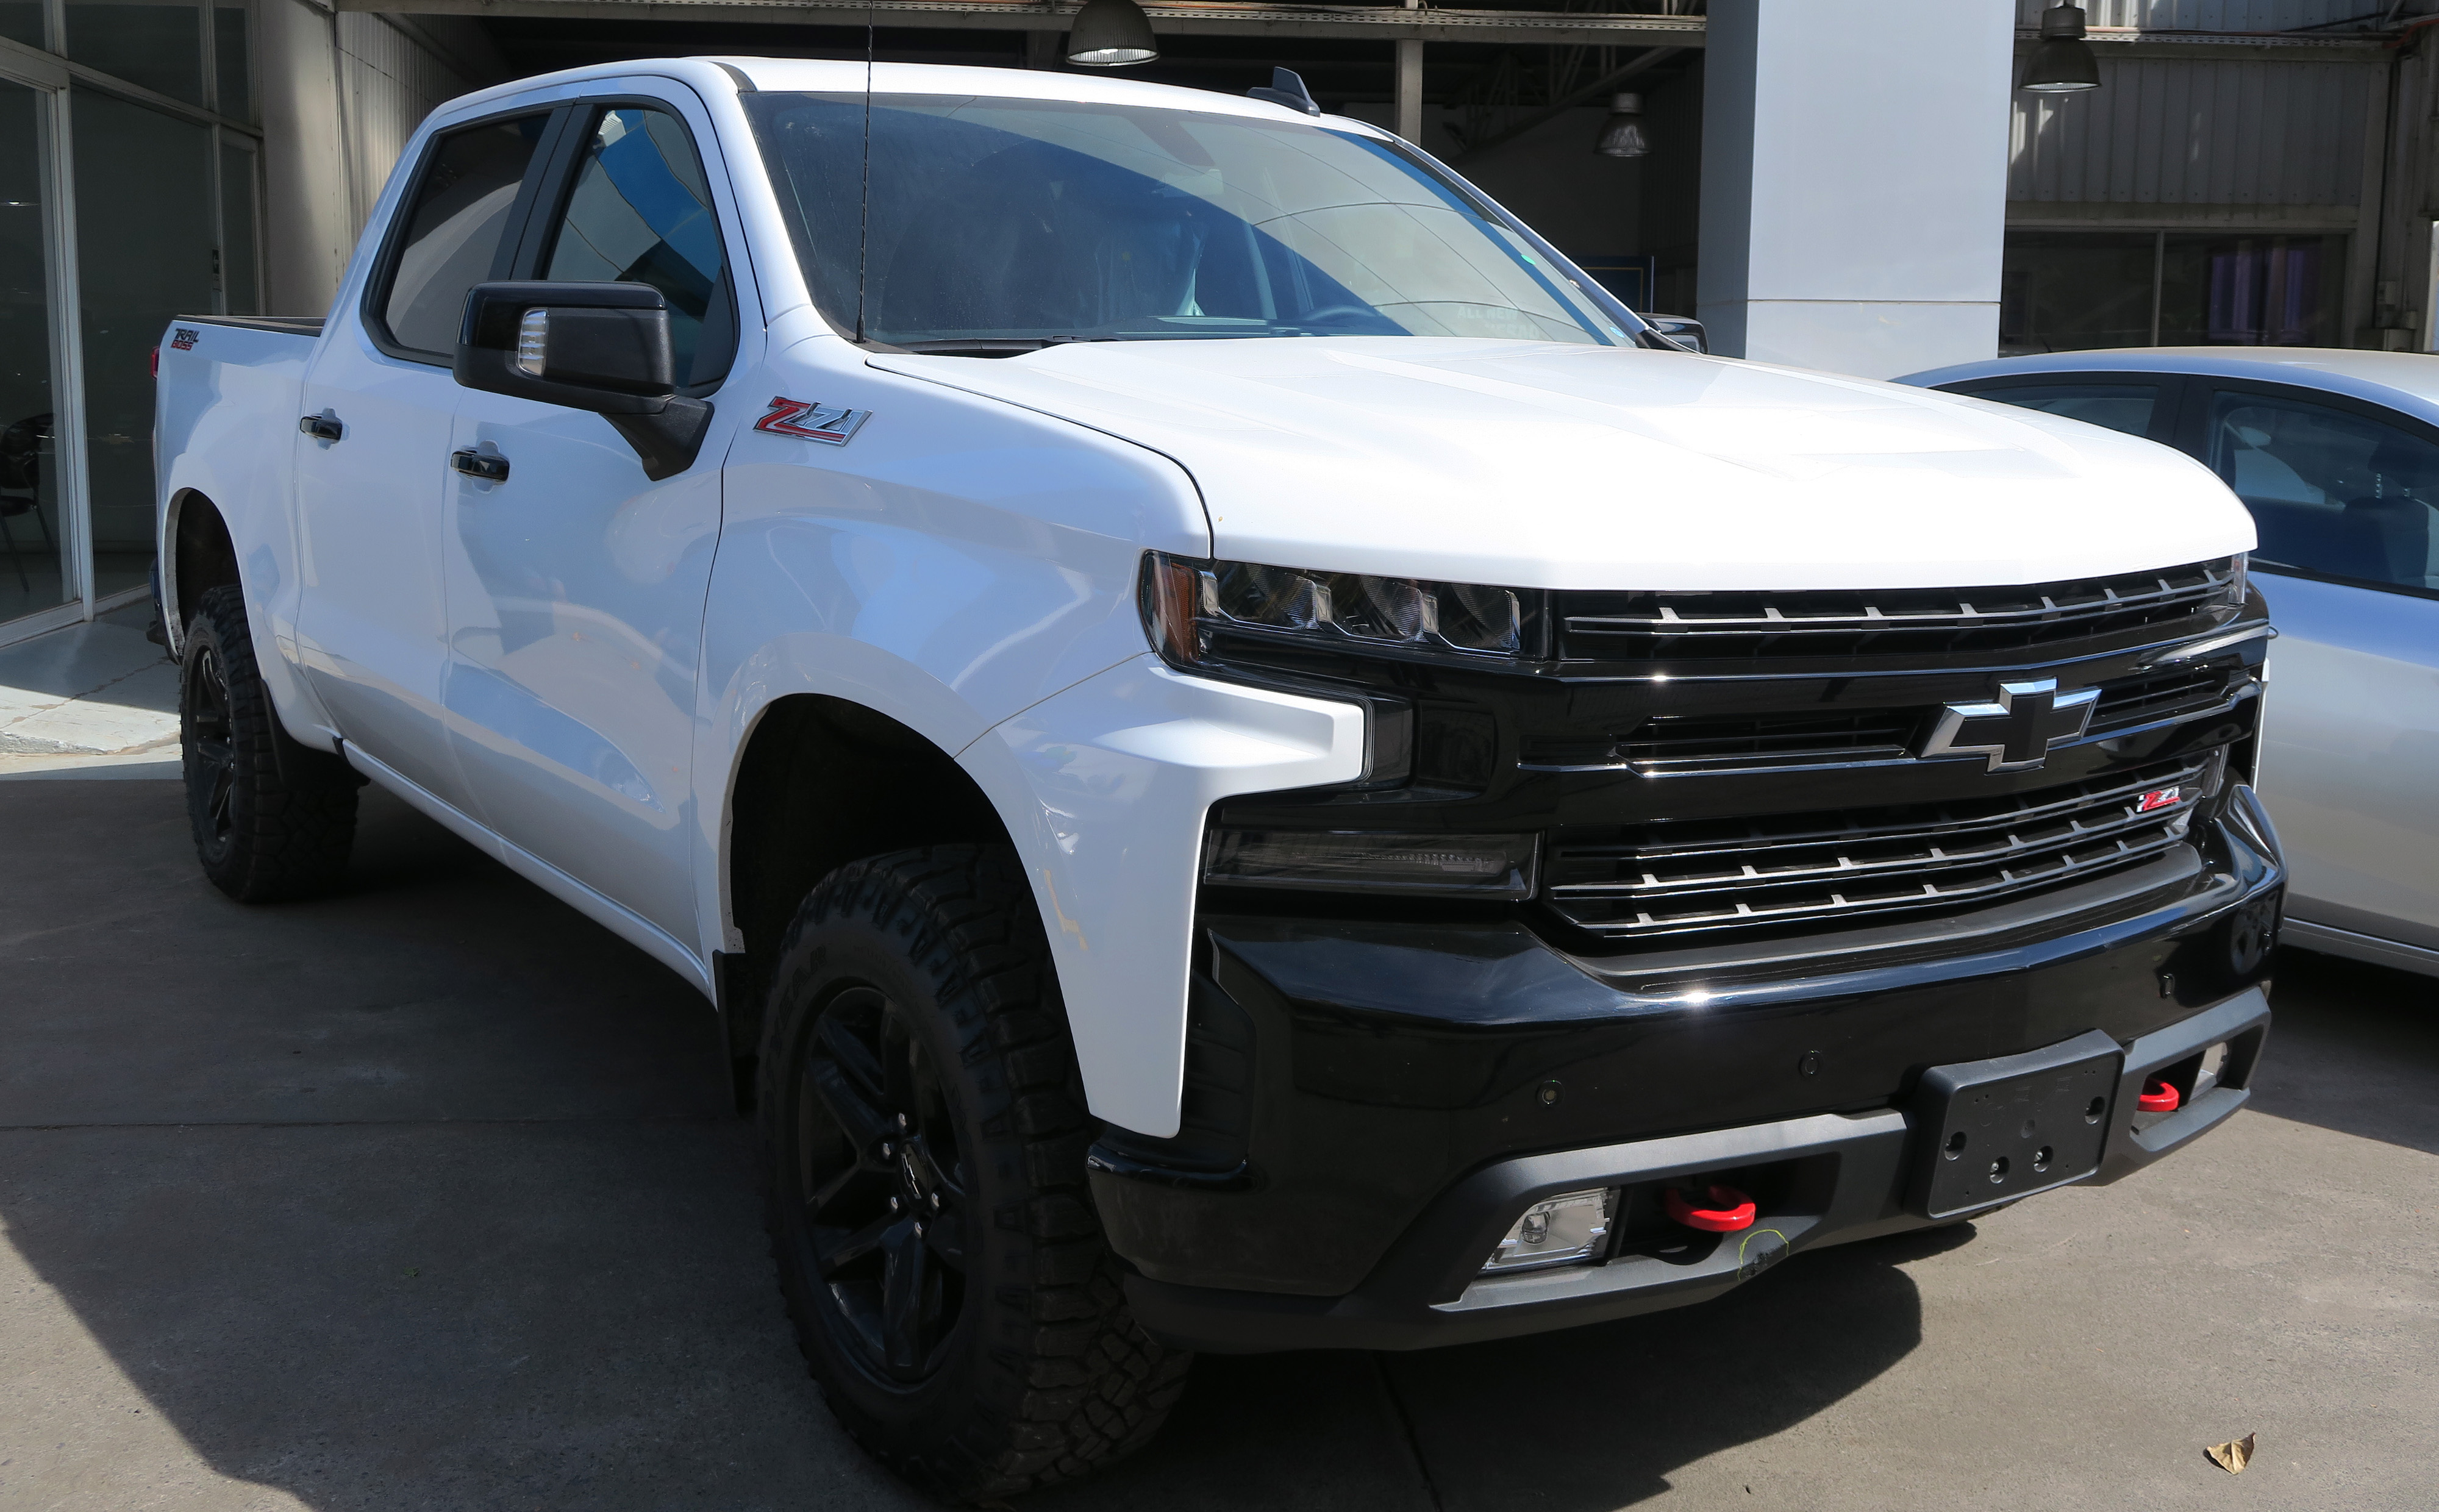 2020 Chevy Cheyenne Ss Review and Release date